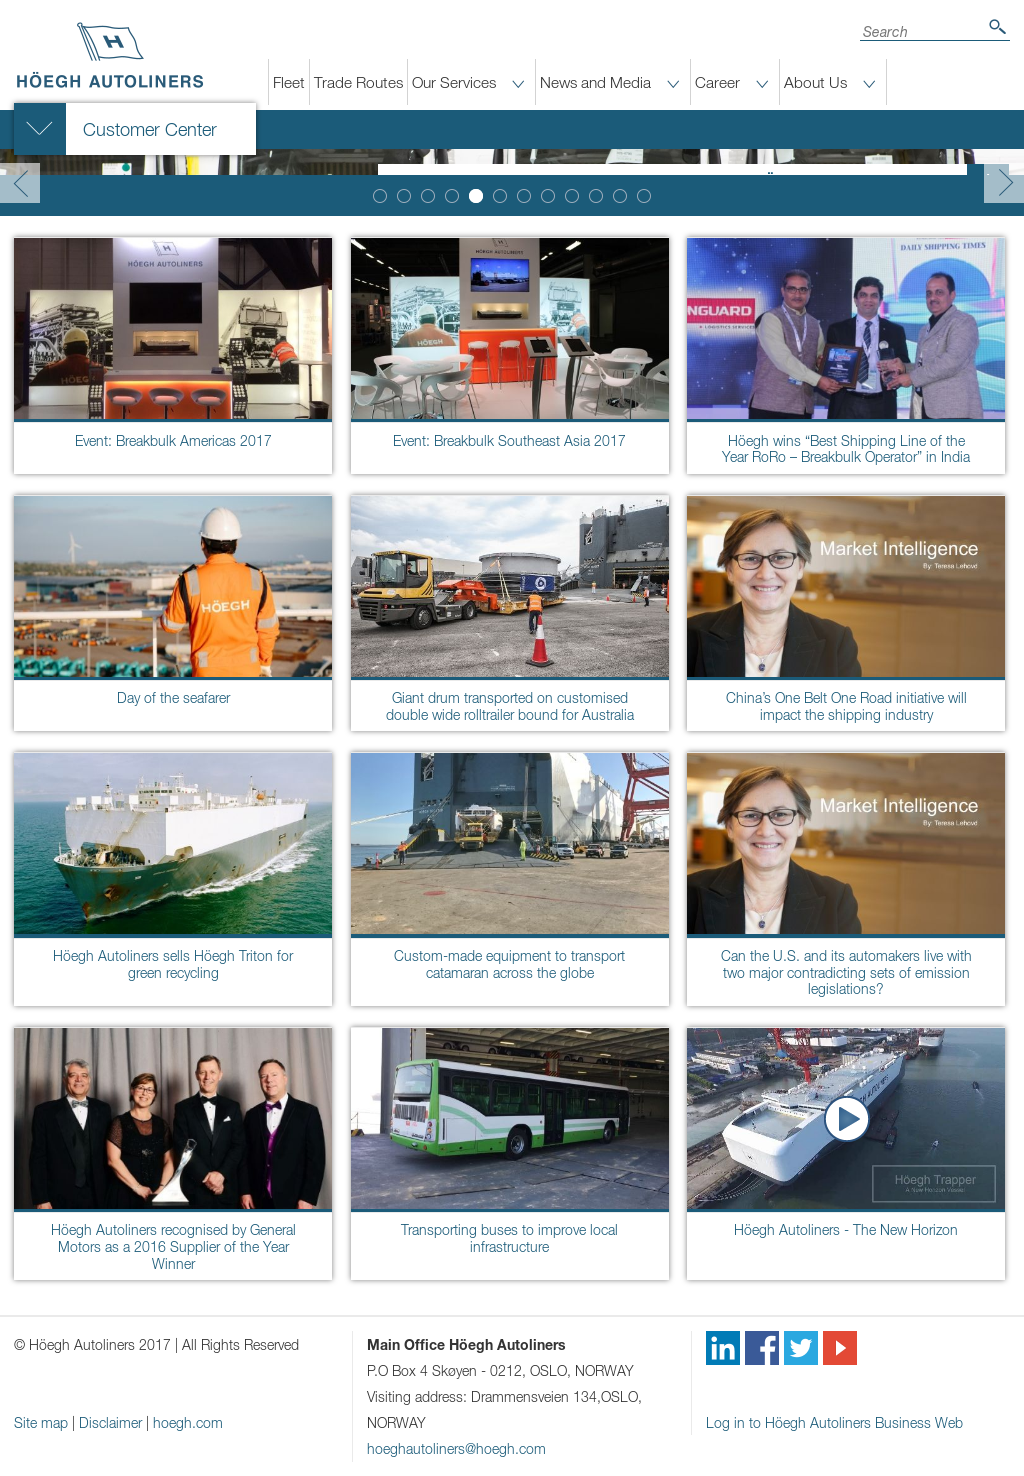 Höegh Autoliners Competitors, Revenue and Employees - Owler